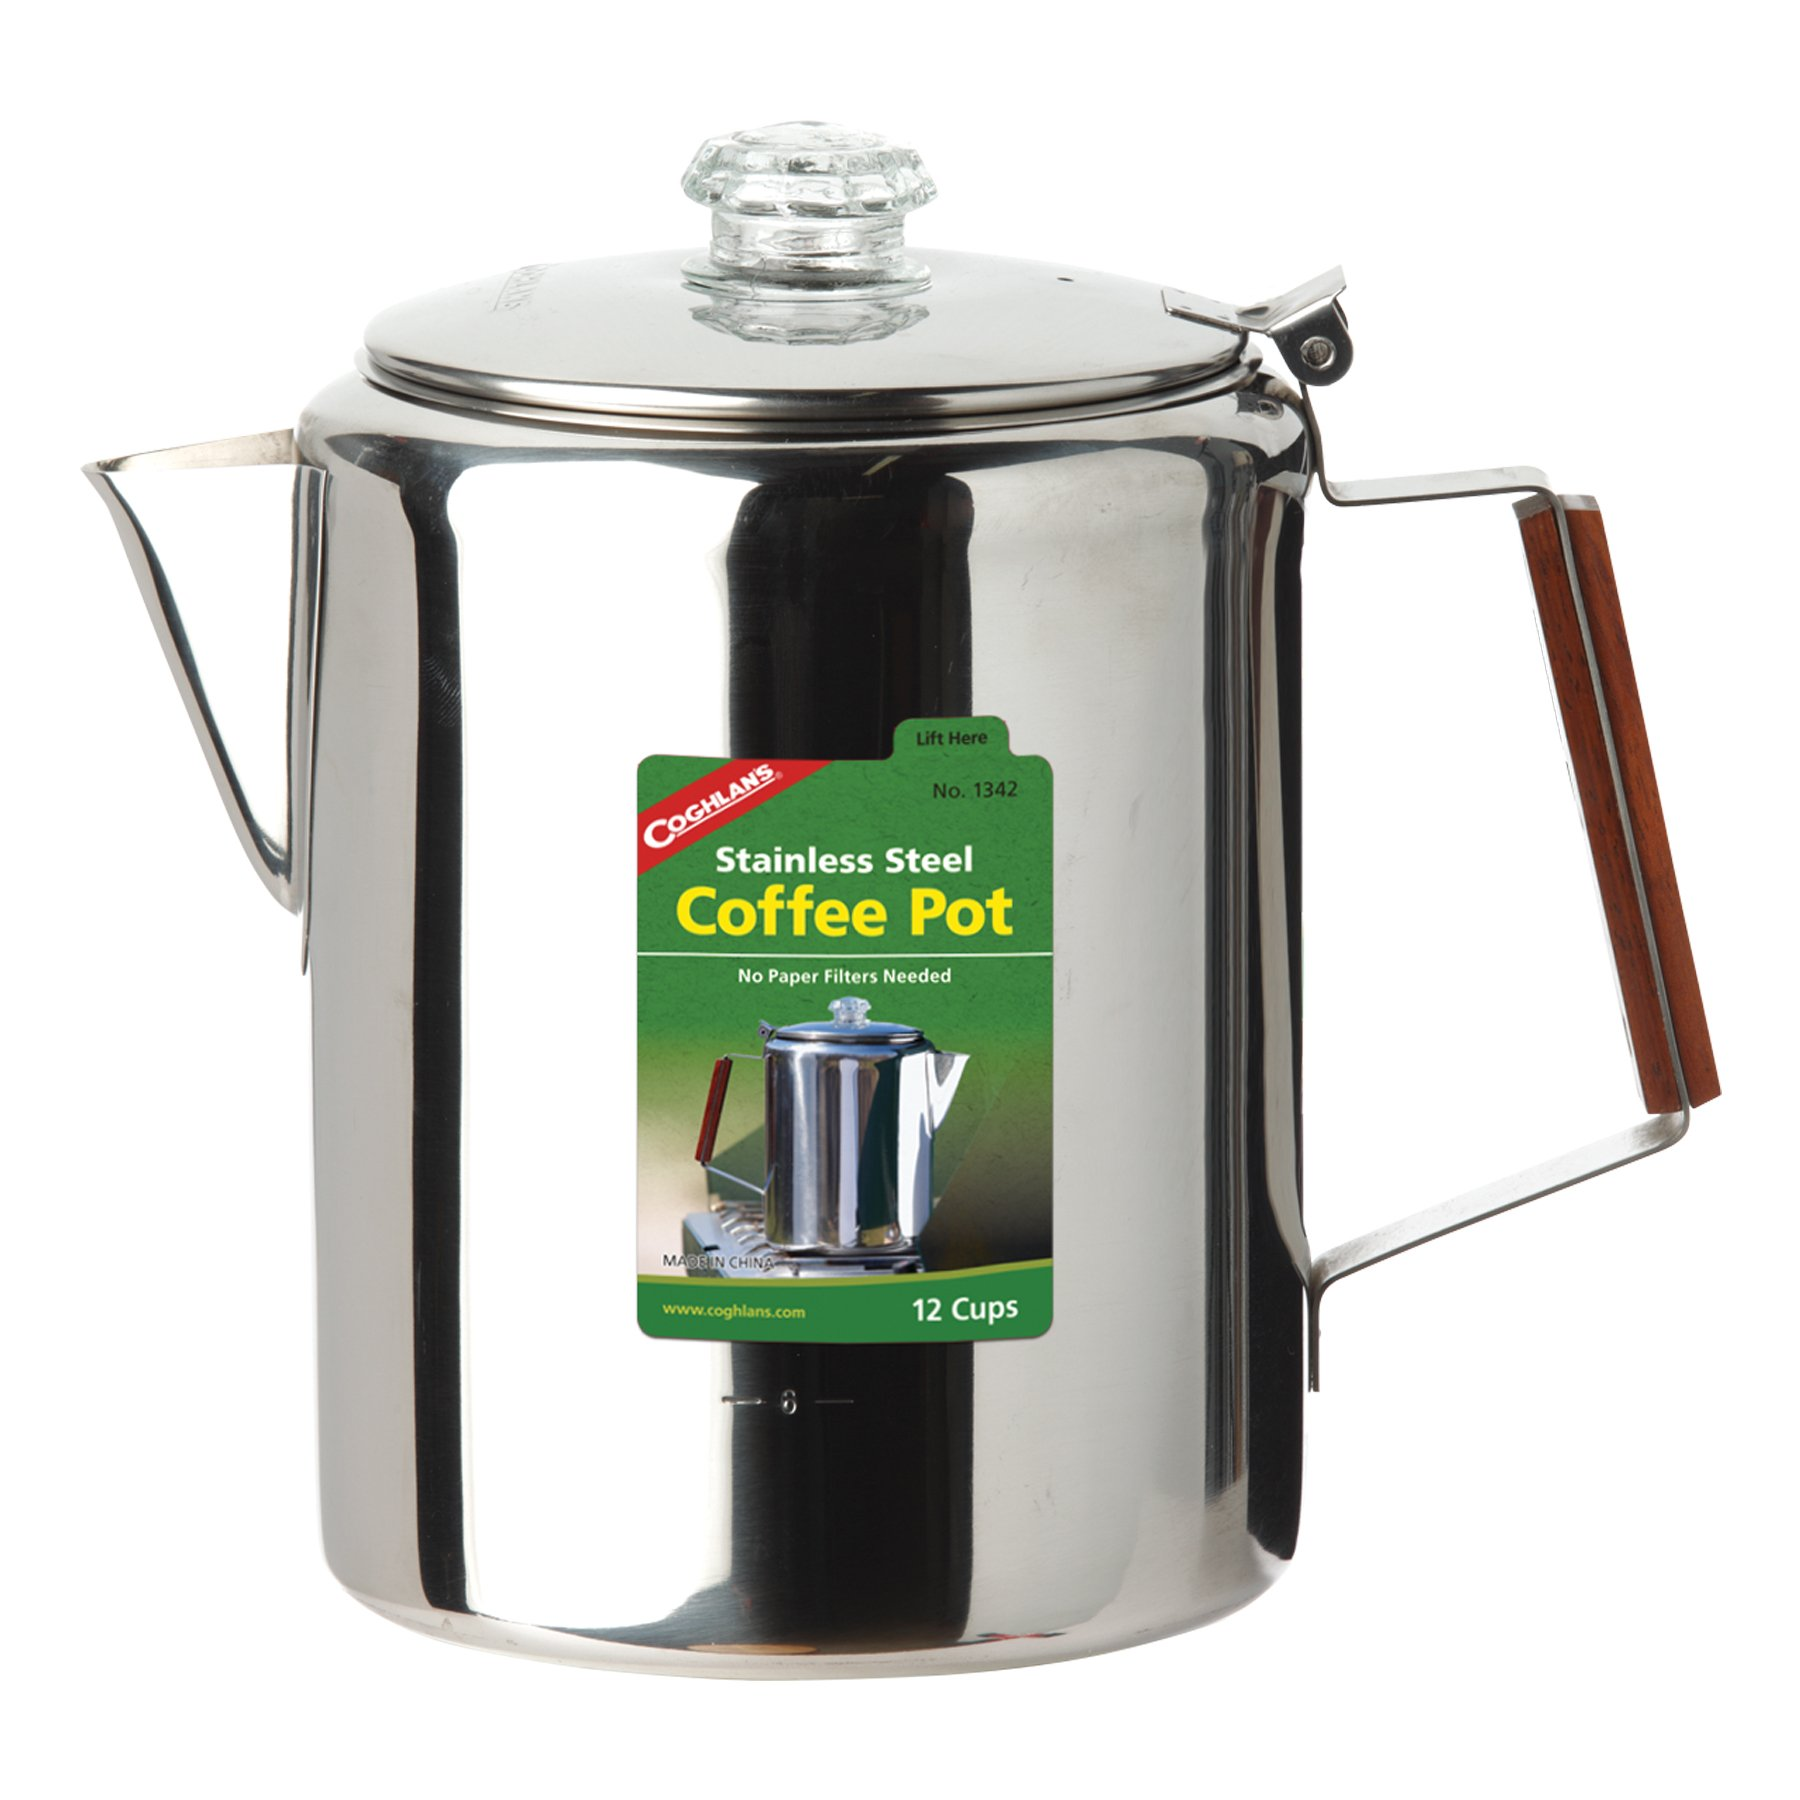 Coghlan's 12-Cup Stainless Steel Coffee Pot, Silver by Coghlan's